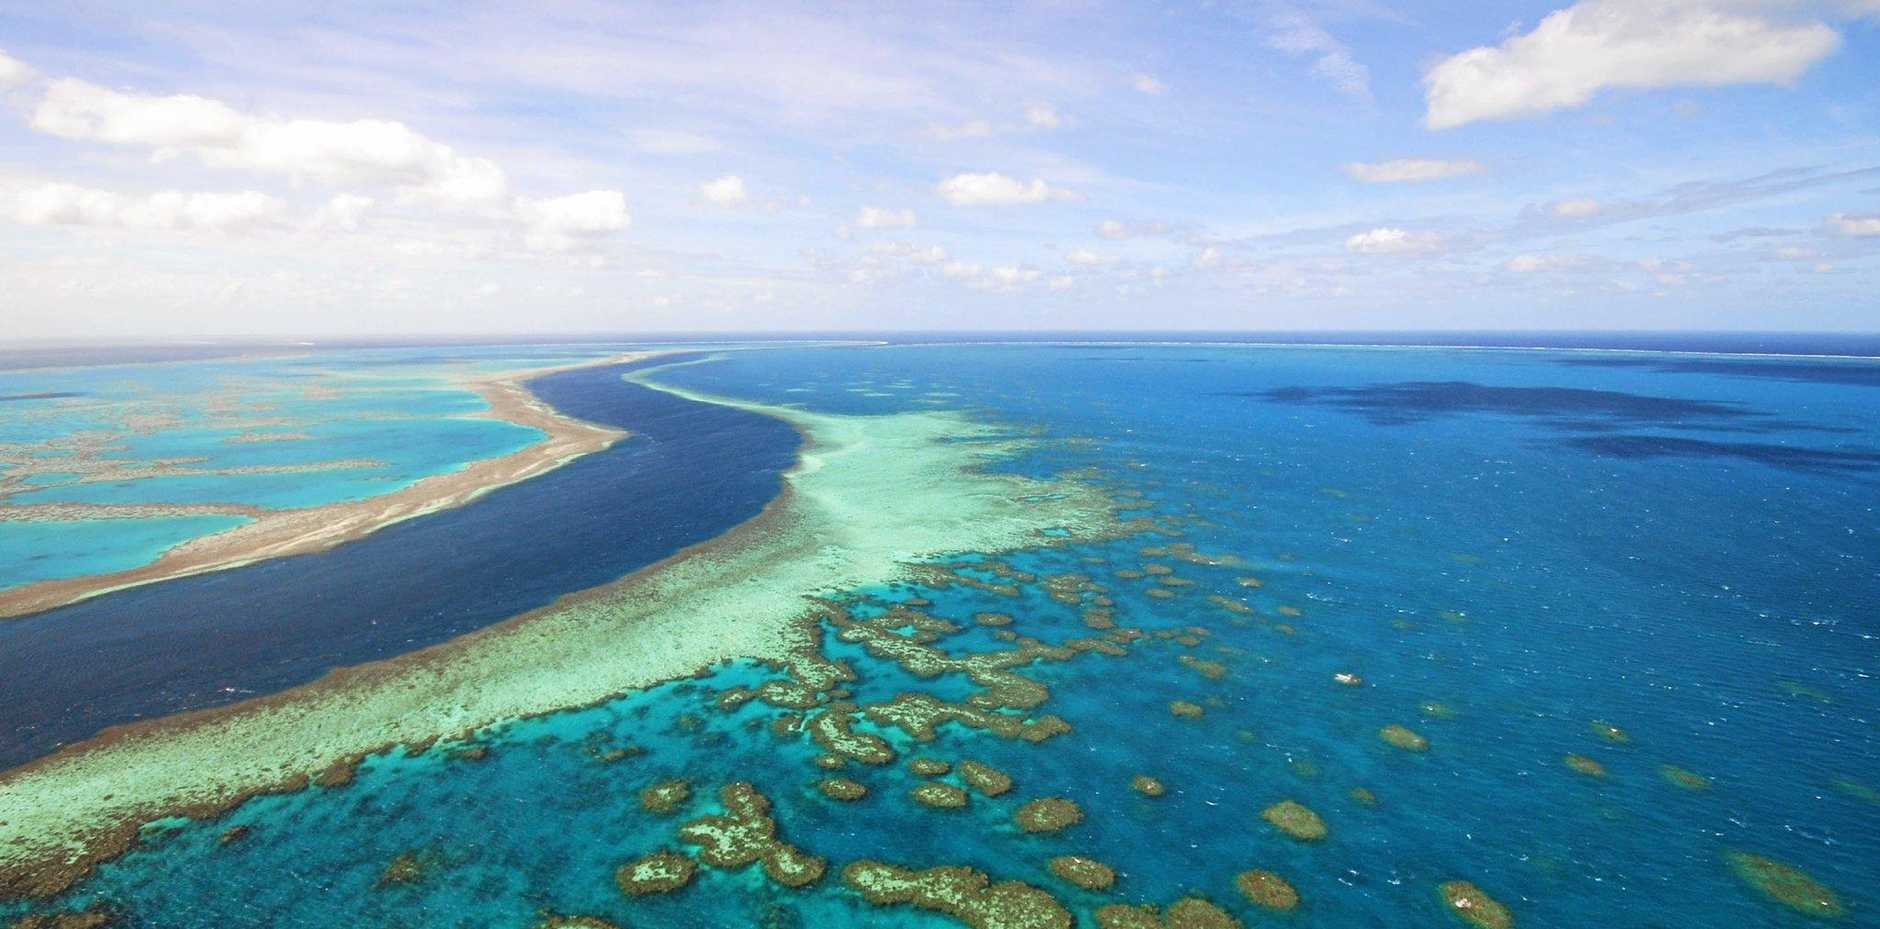 CONCERNS: Agforce comments on the reef trigger concerns.